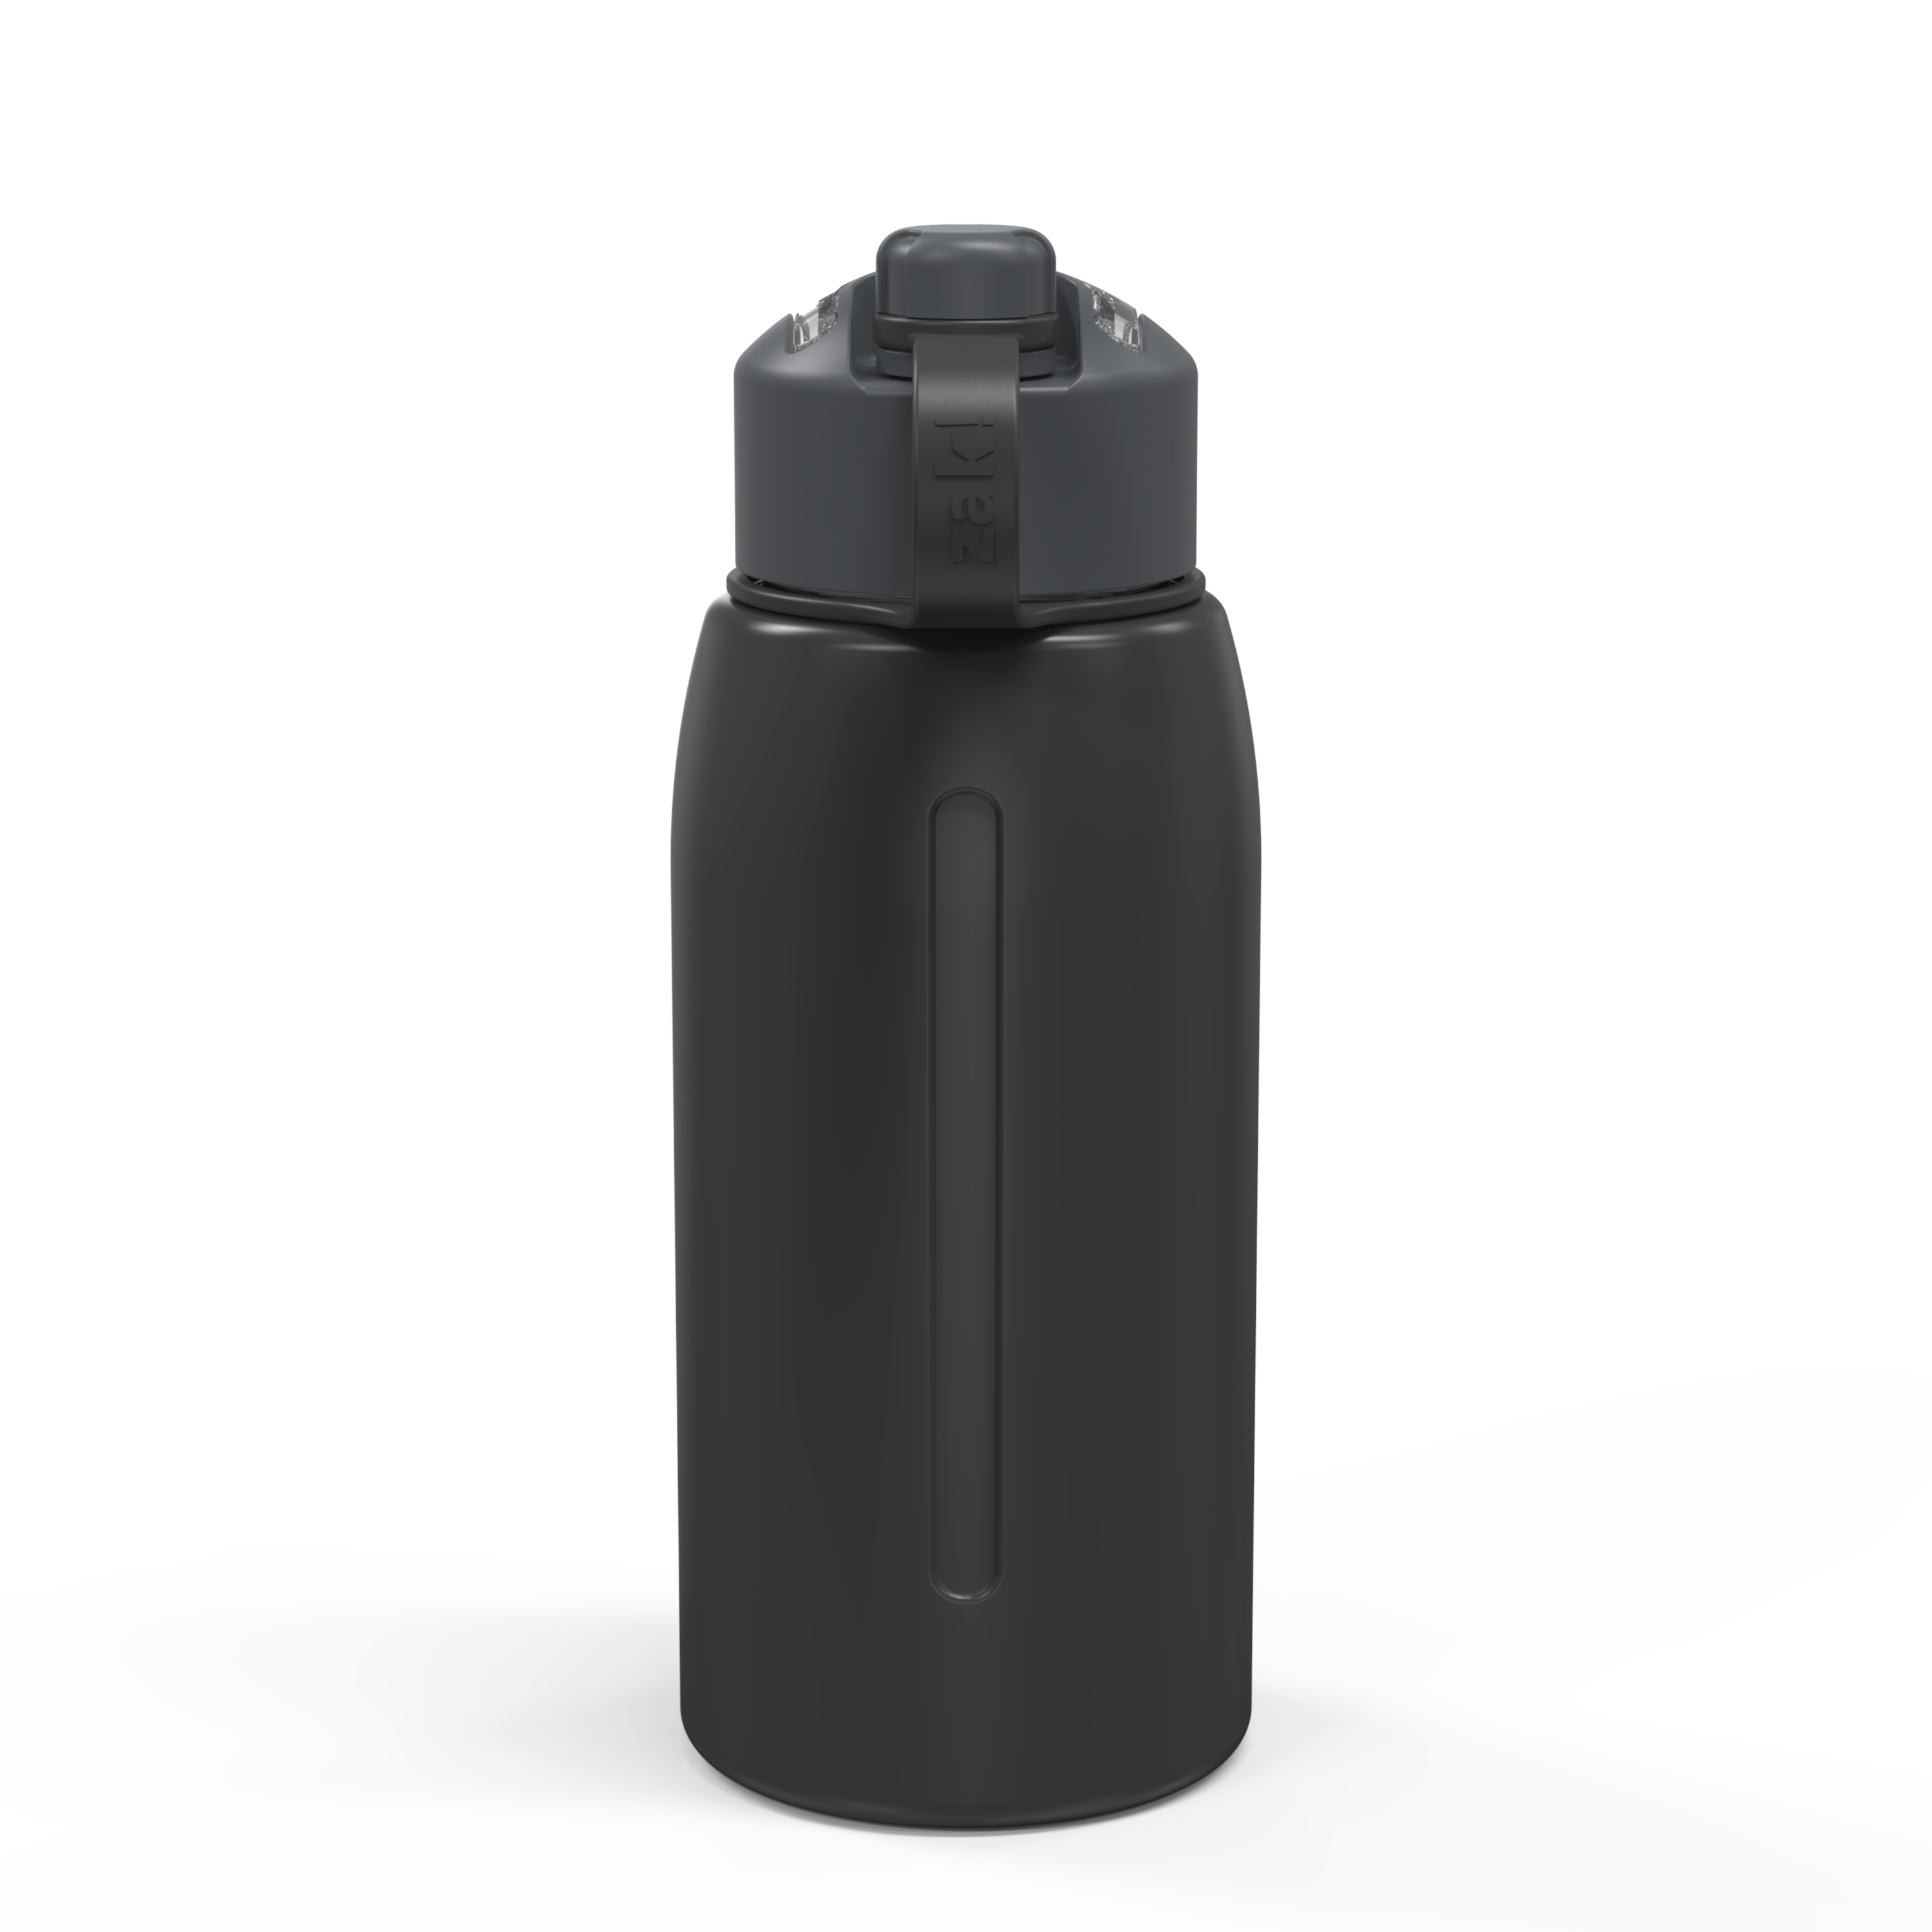 Genesis 32 ounce Vacuum Insulated Stainless Steel Tumbler, Charcoal slideshow image 9